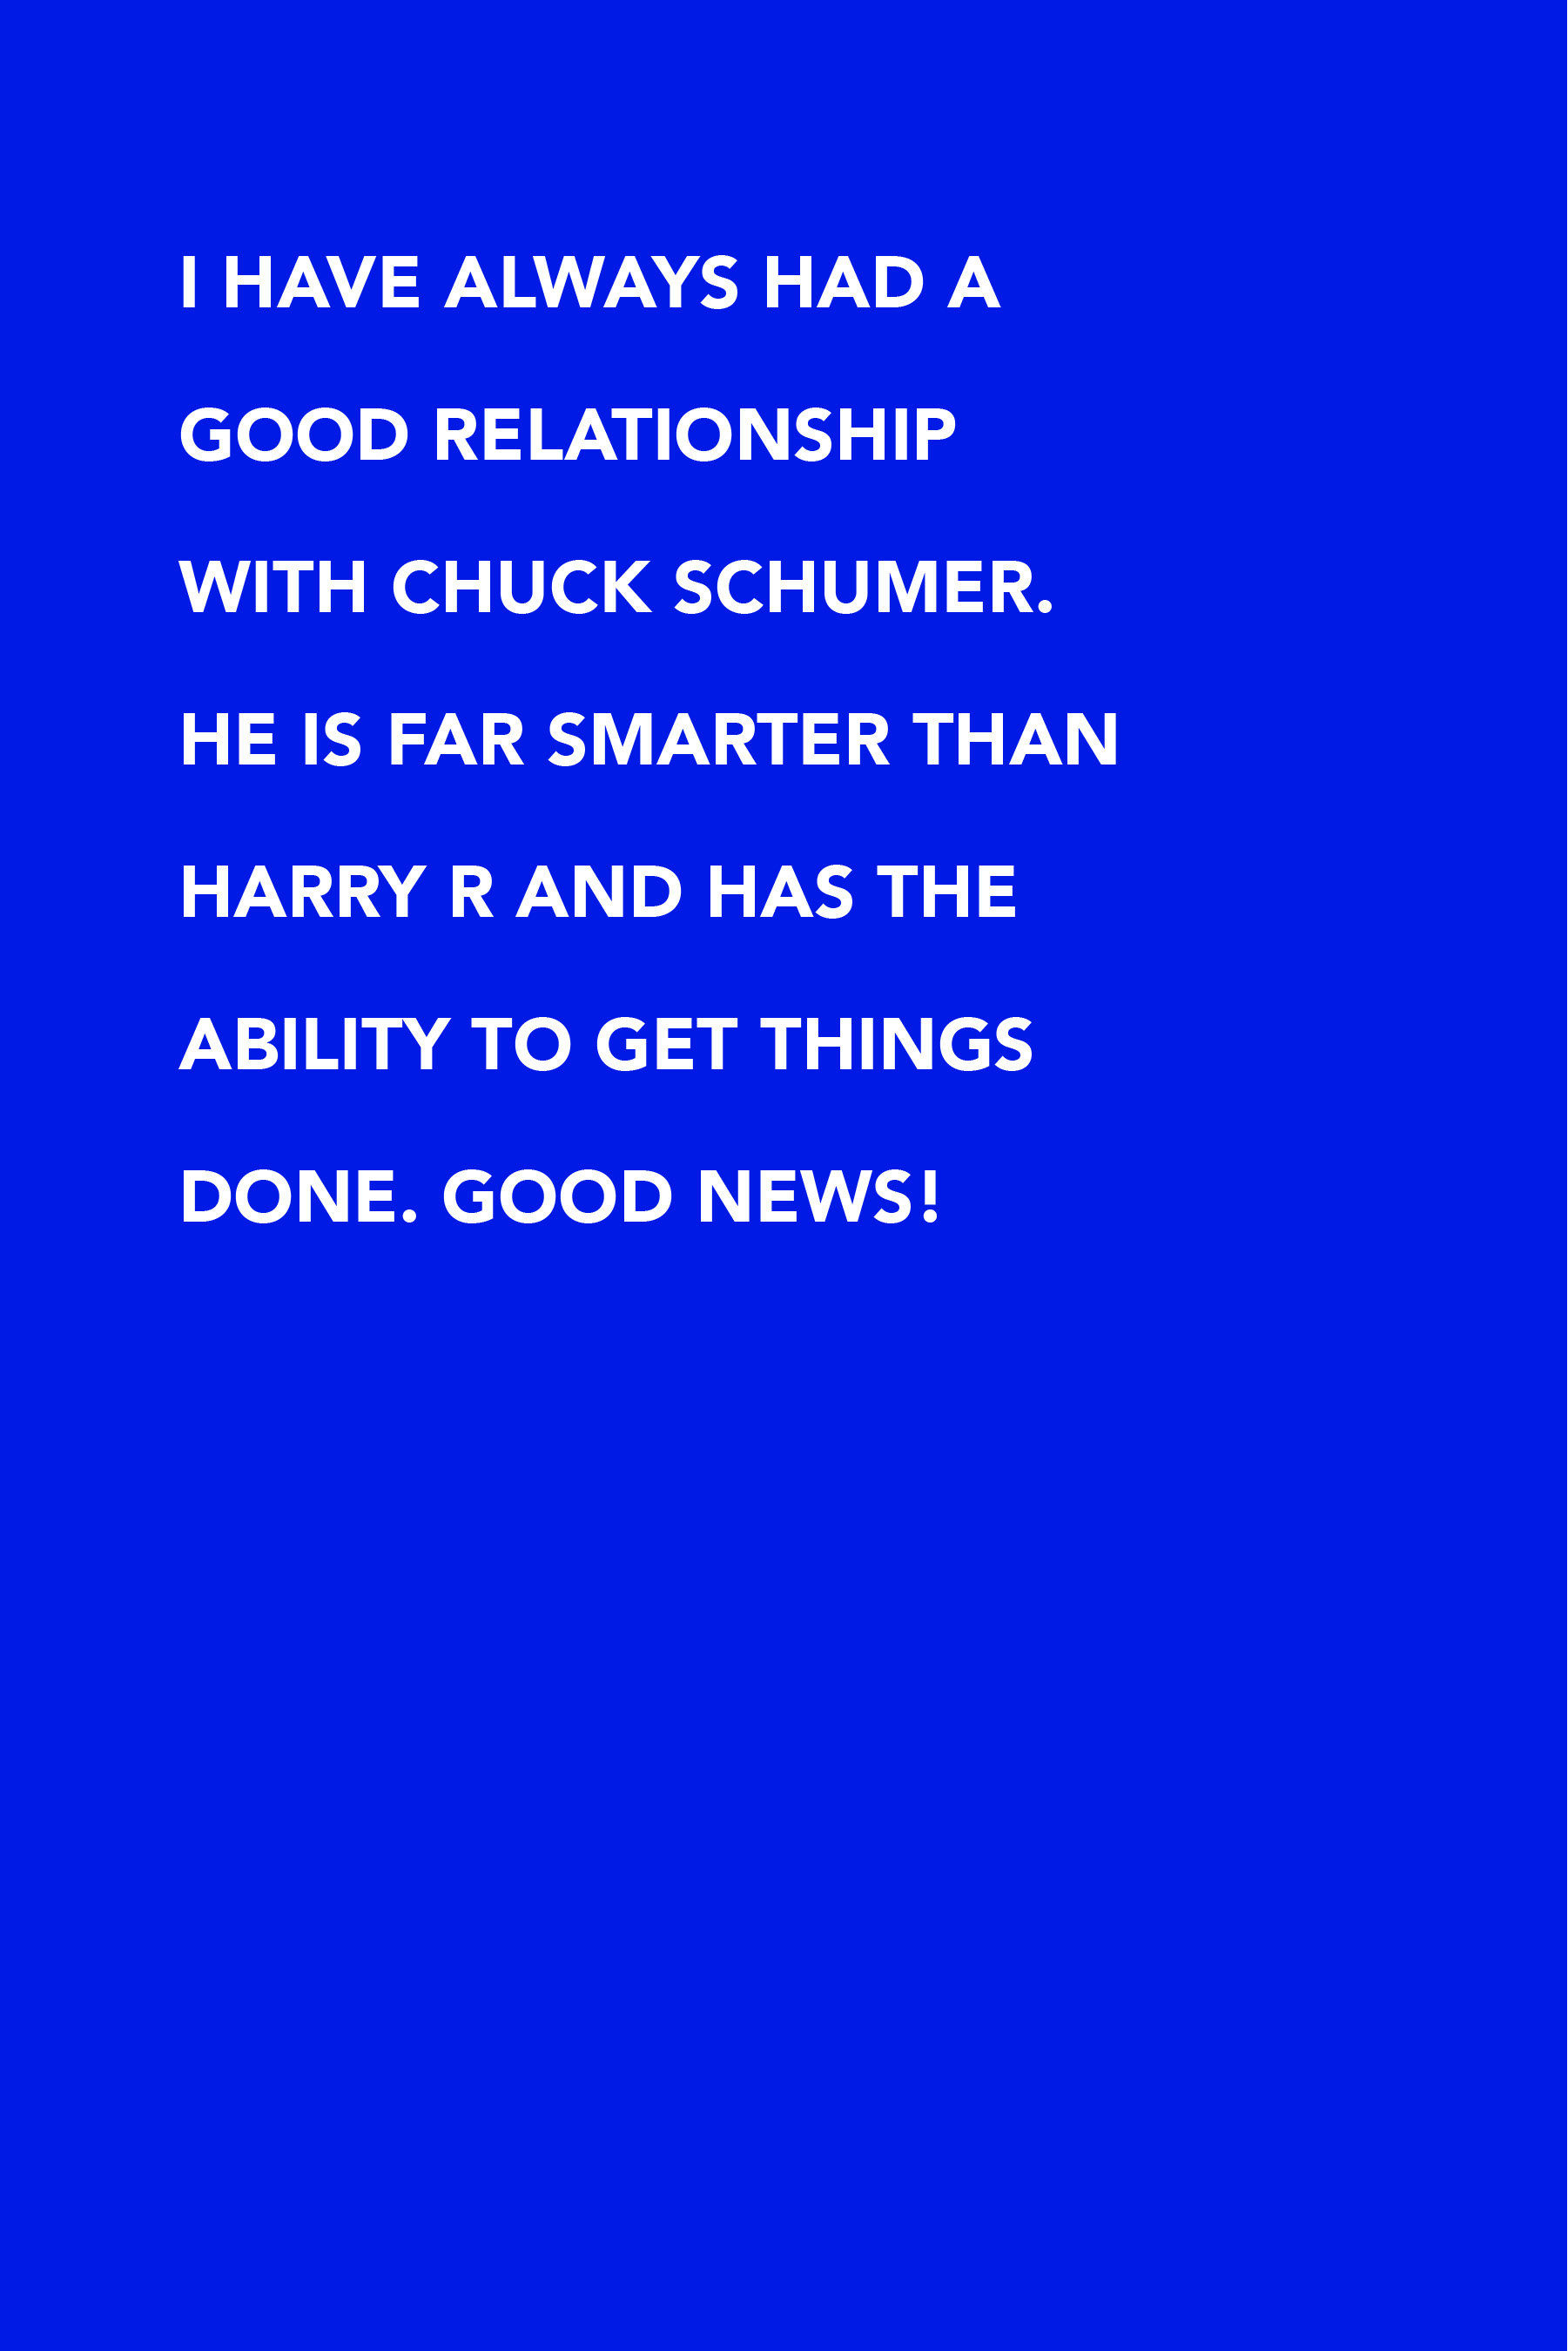 I have always had a good relationship with Chuck Schumer. He is far smarter than Harry R and has the ability to get things done. Good news!